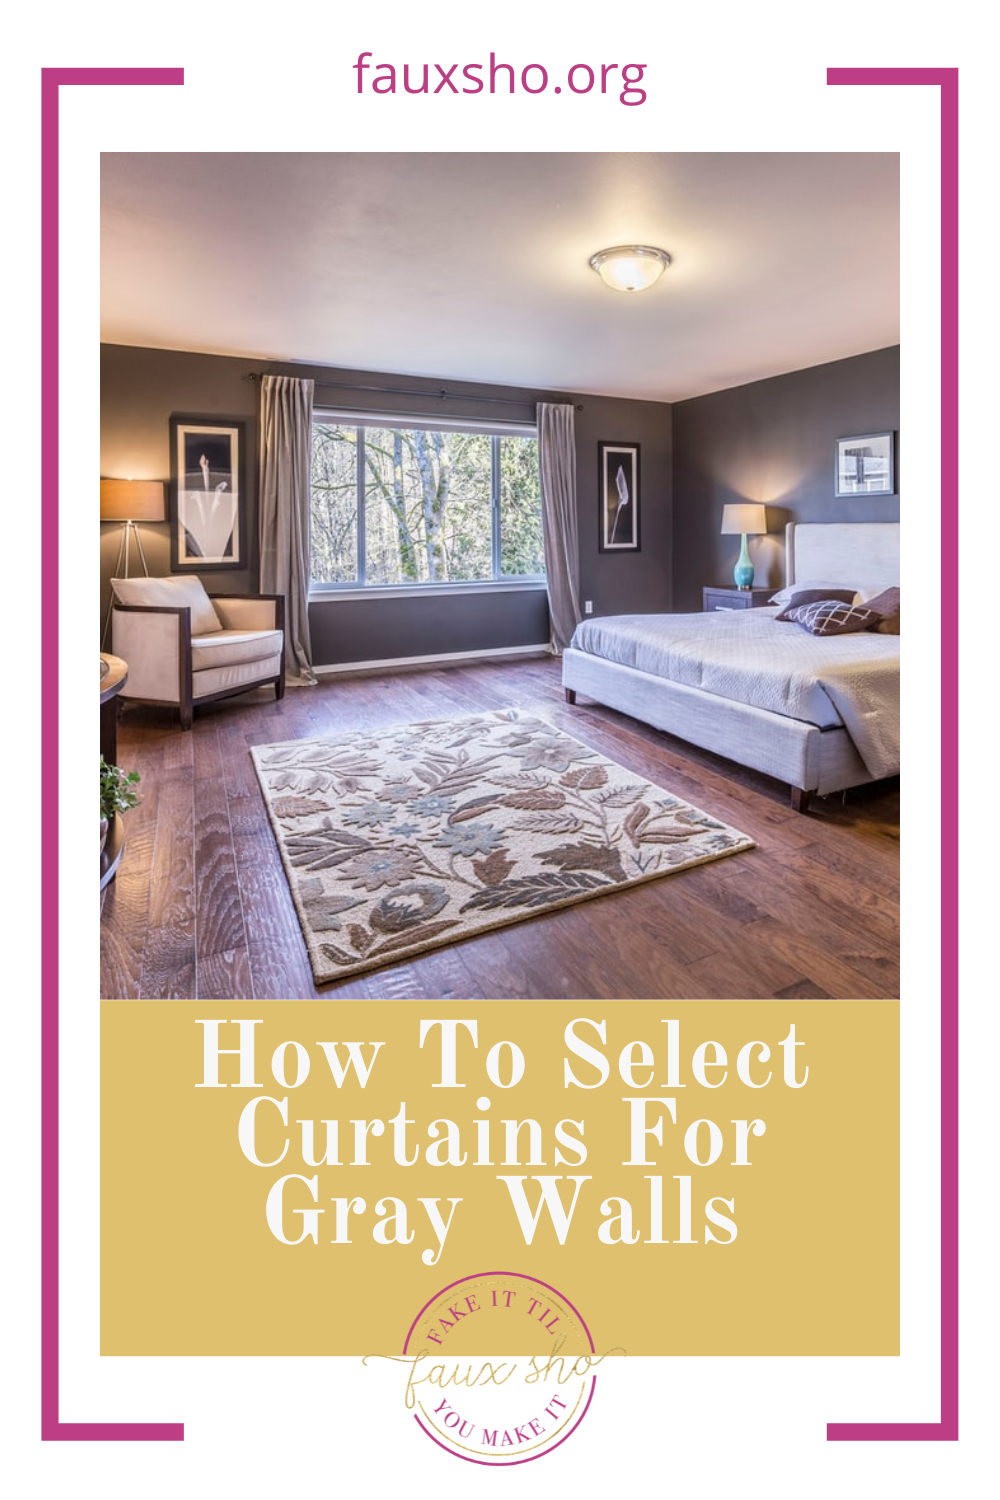 Fauxsho.org will help you find out how to do things on your own--even without any experience! Looking to fix up an outdated space? Find out how to match your curtains to your gray walls!